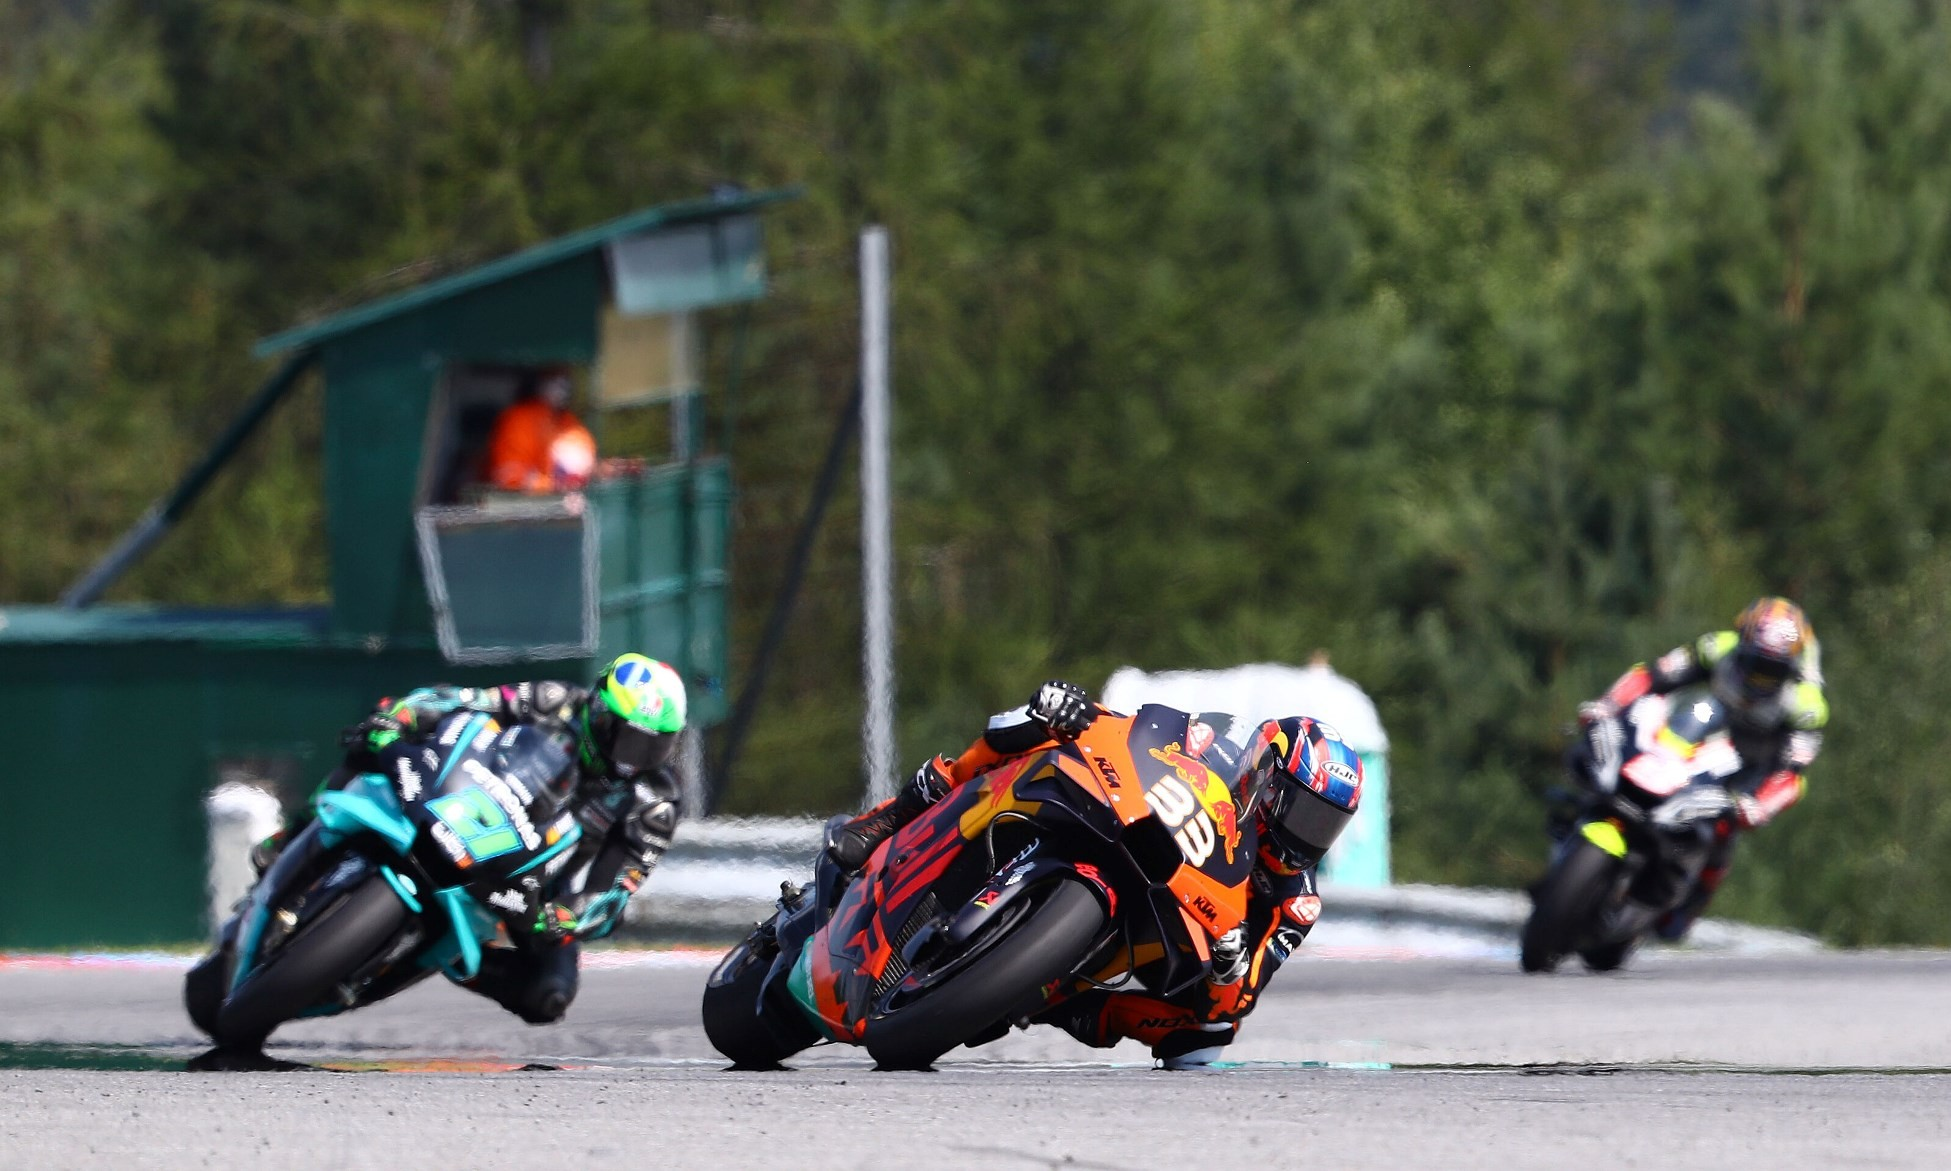 Brad Binder wins at Brno